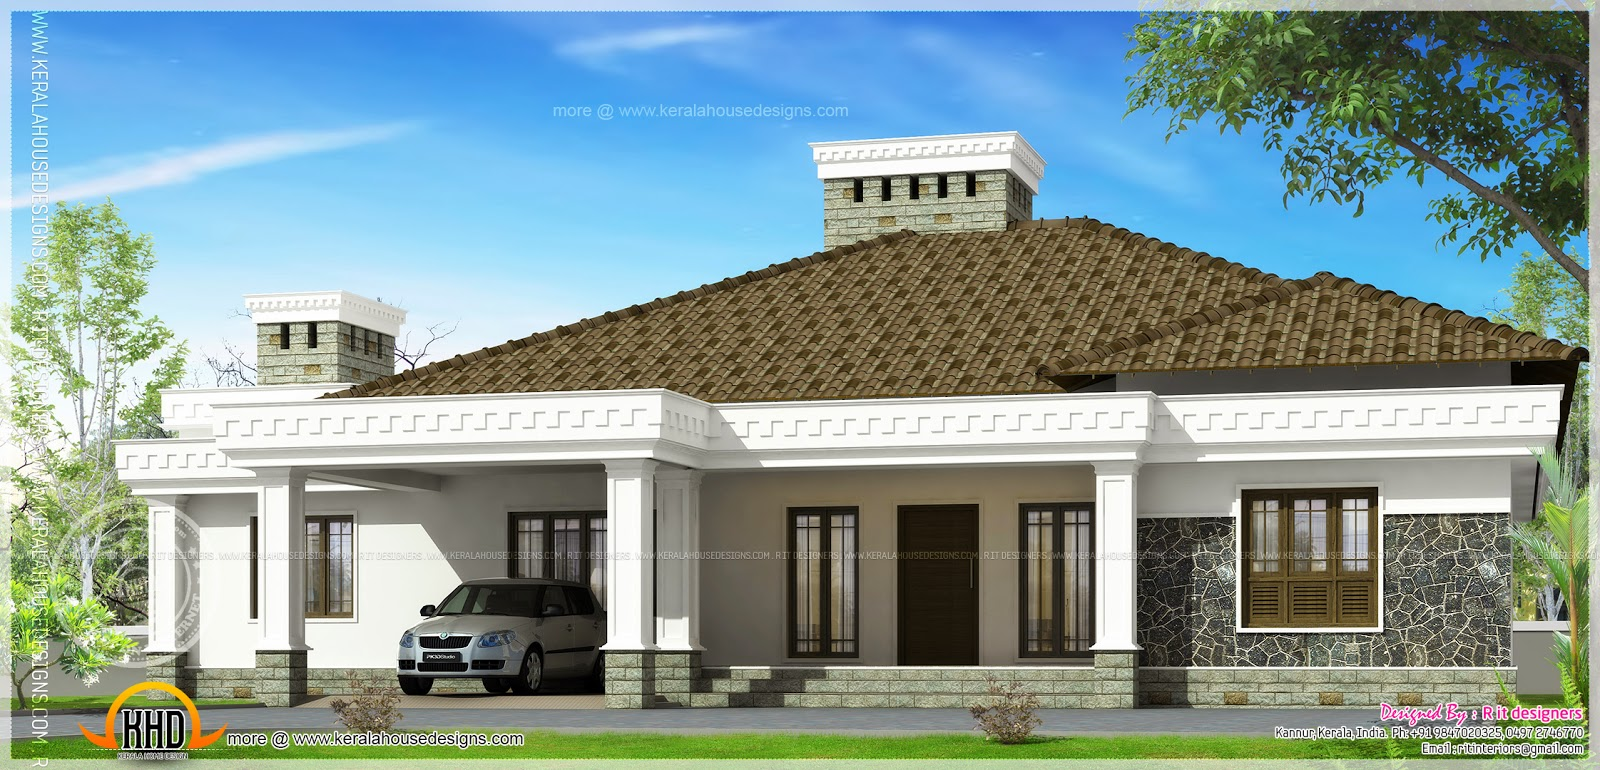 Big single storied house exterior kerala home design and for Kerala style single storey house plans